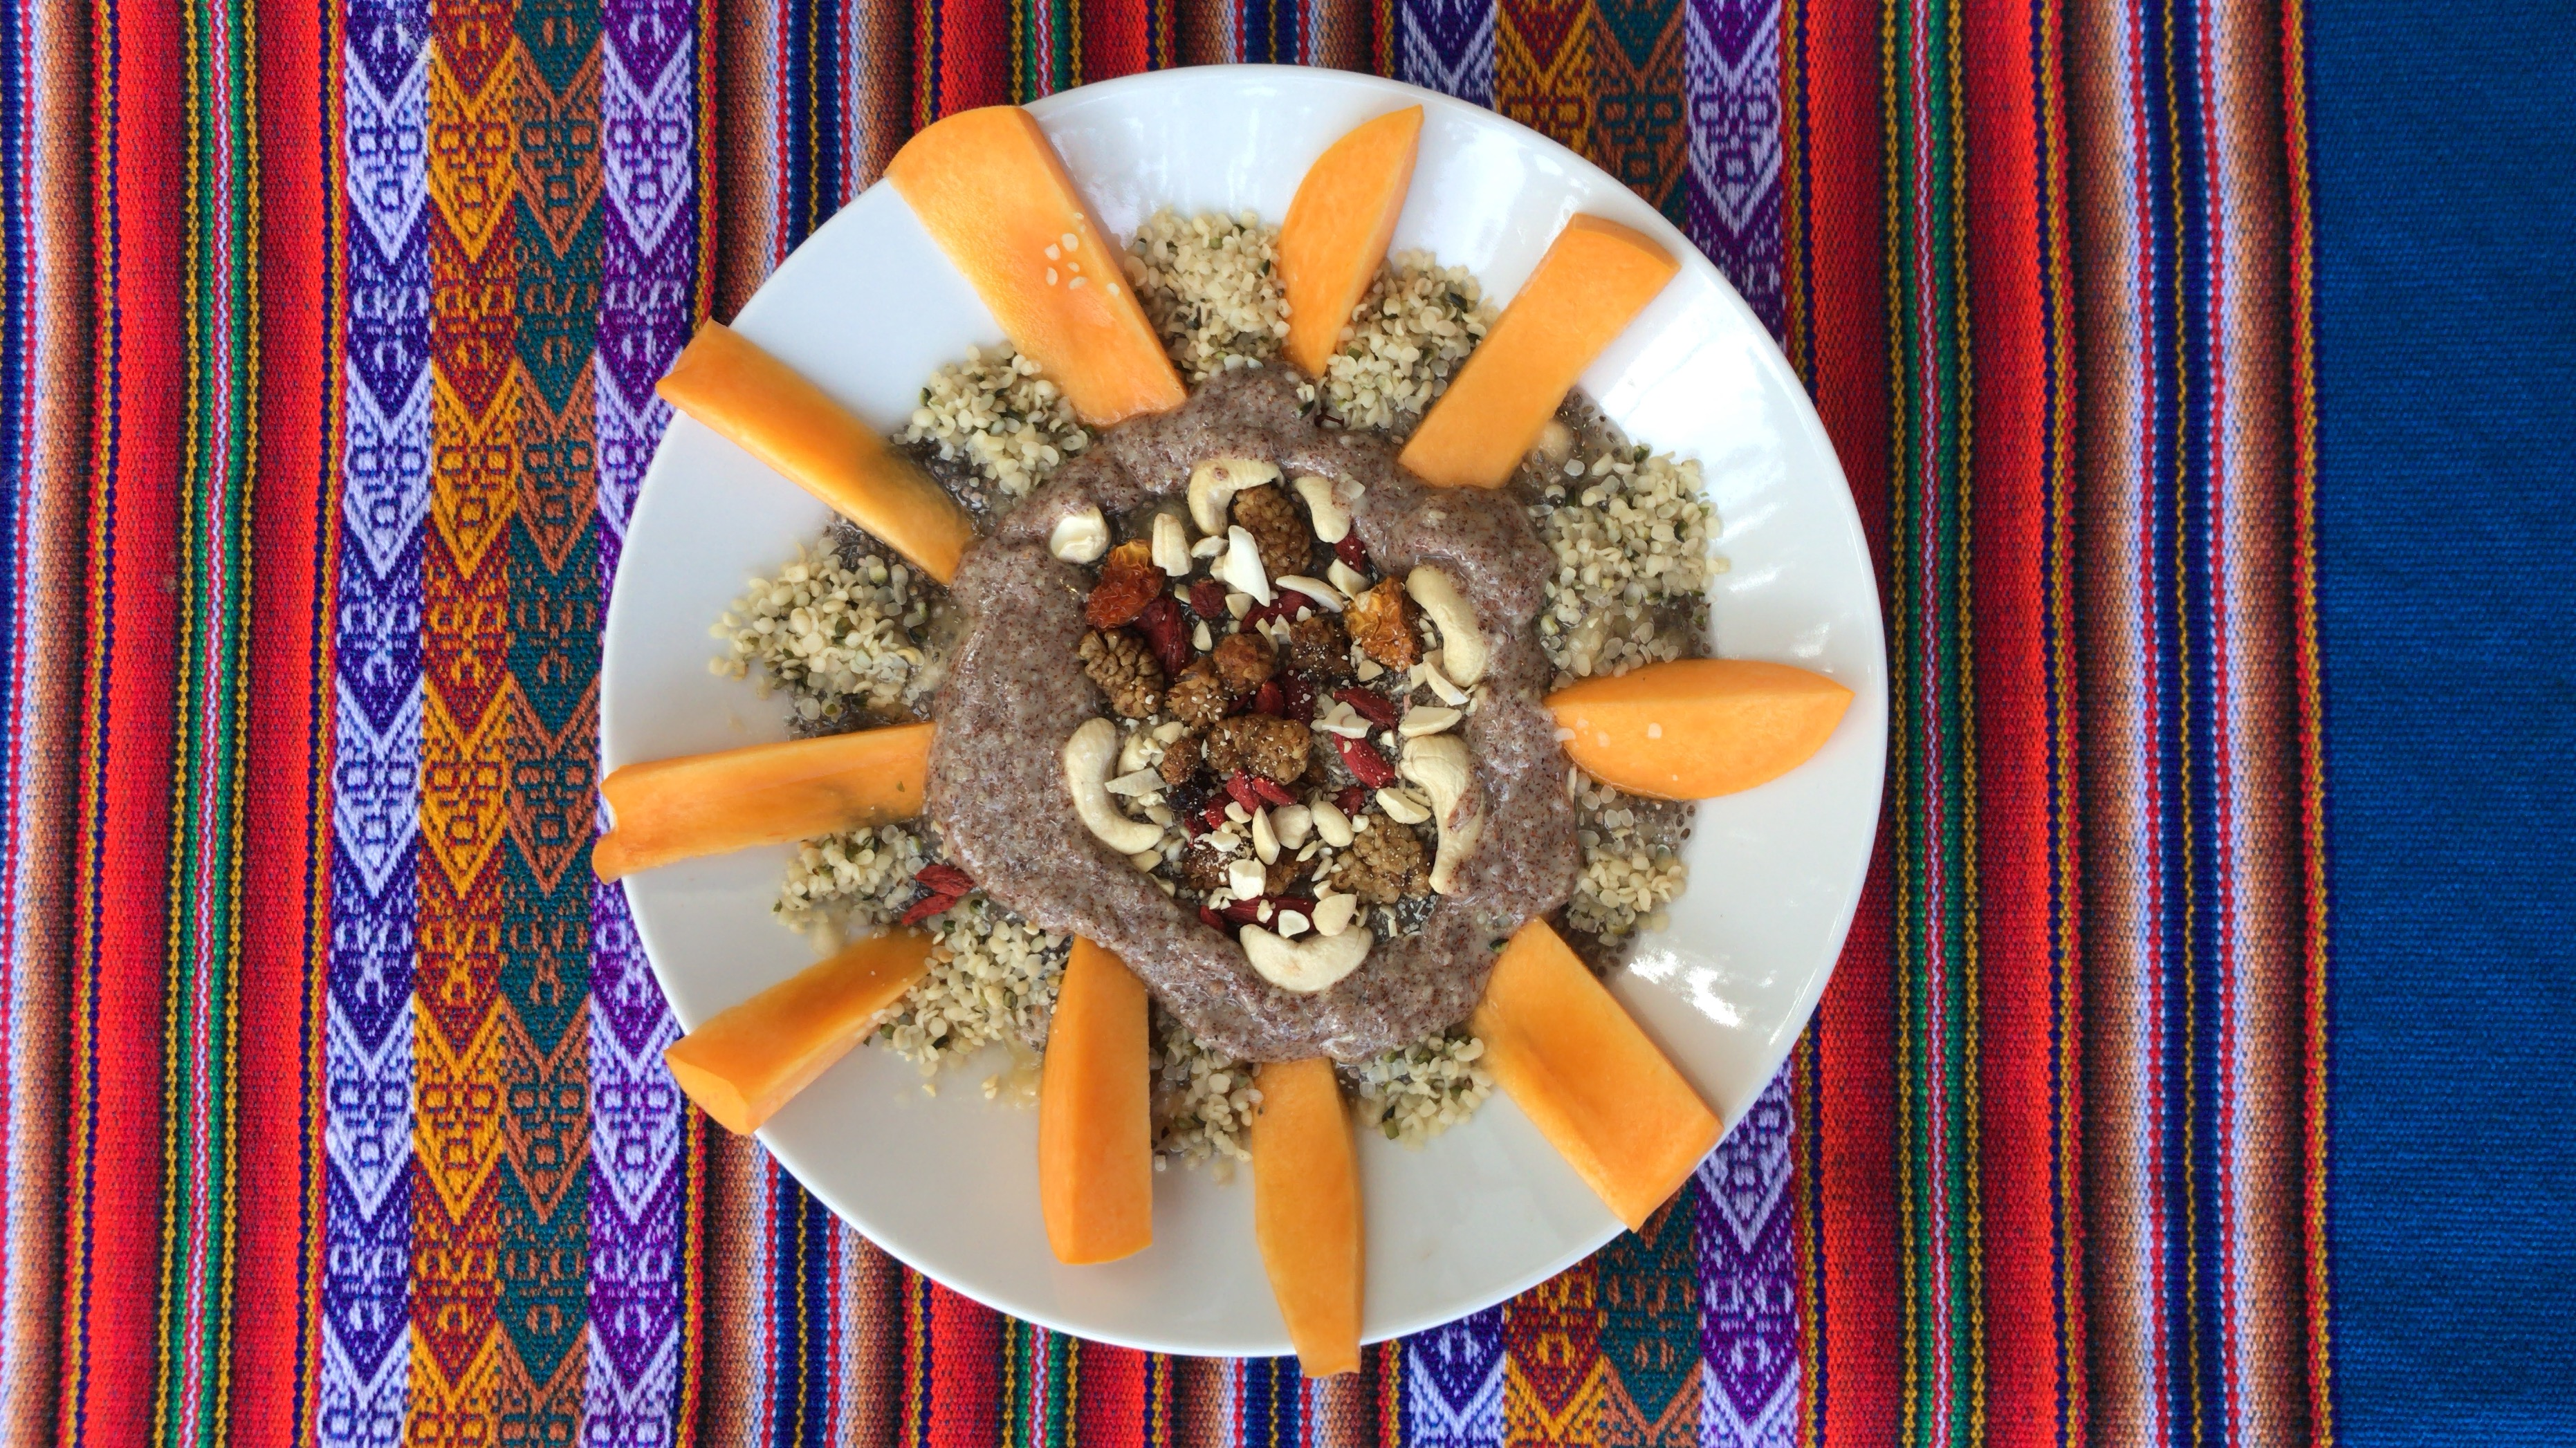 Chia breakfast bowl